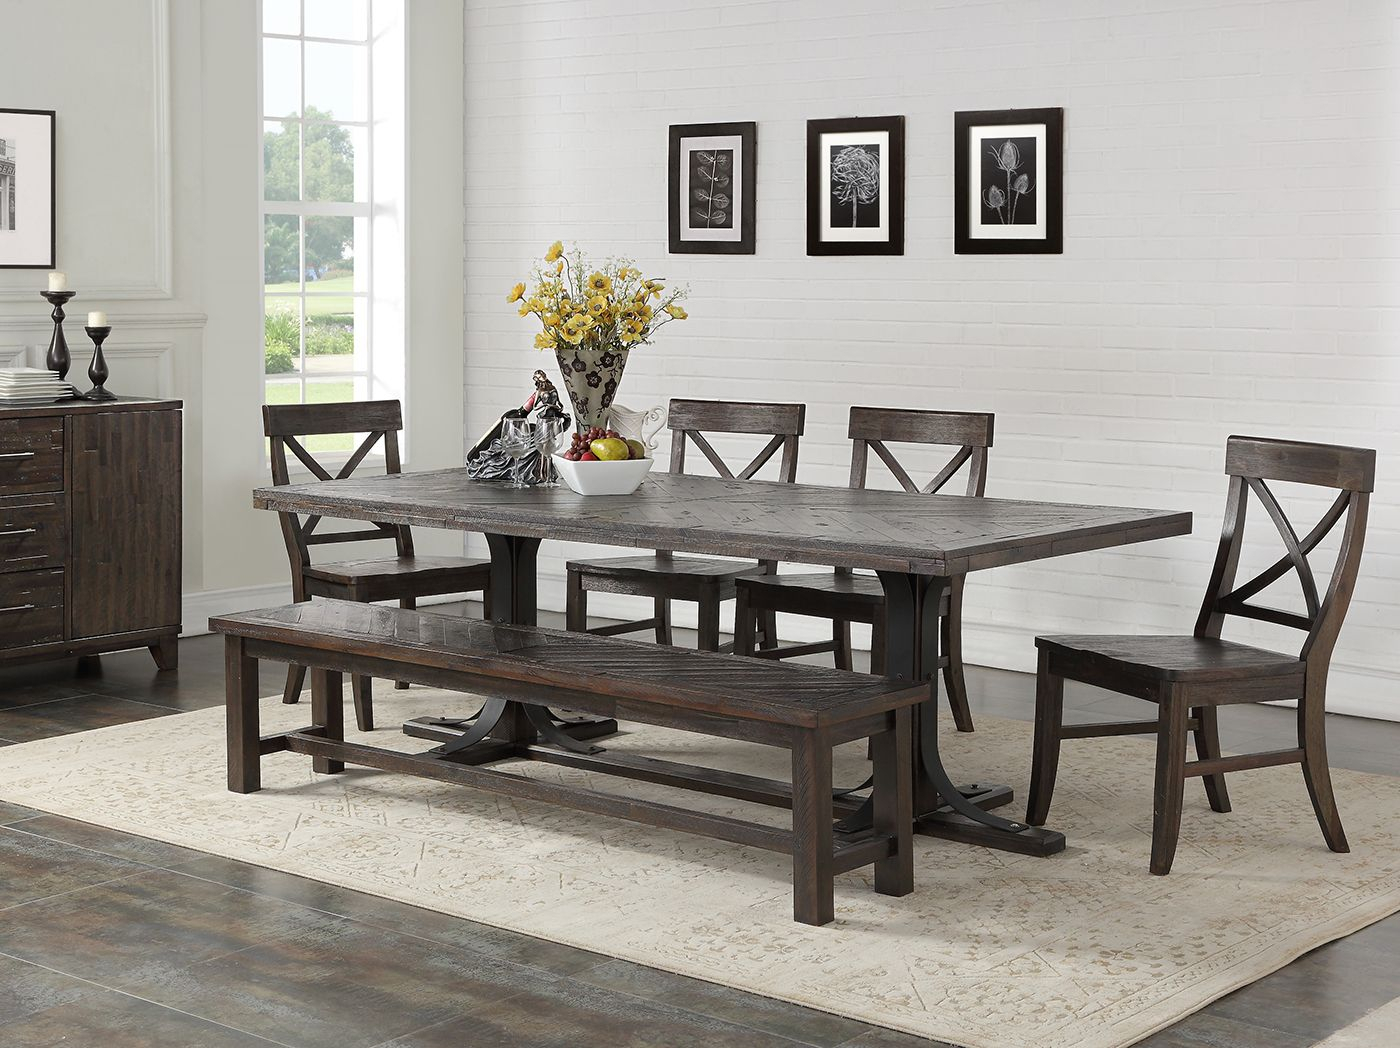 Trendy Aria 5 Piece Dining Sets Throughout Direct Designs® Aria 5 Pc (View 2 of 20)